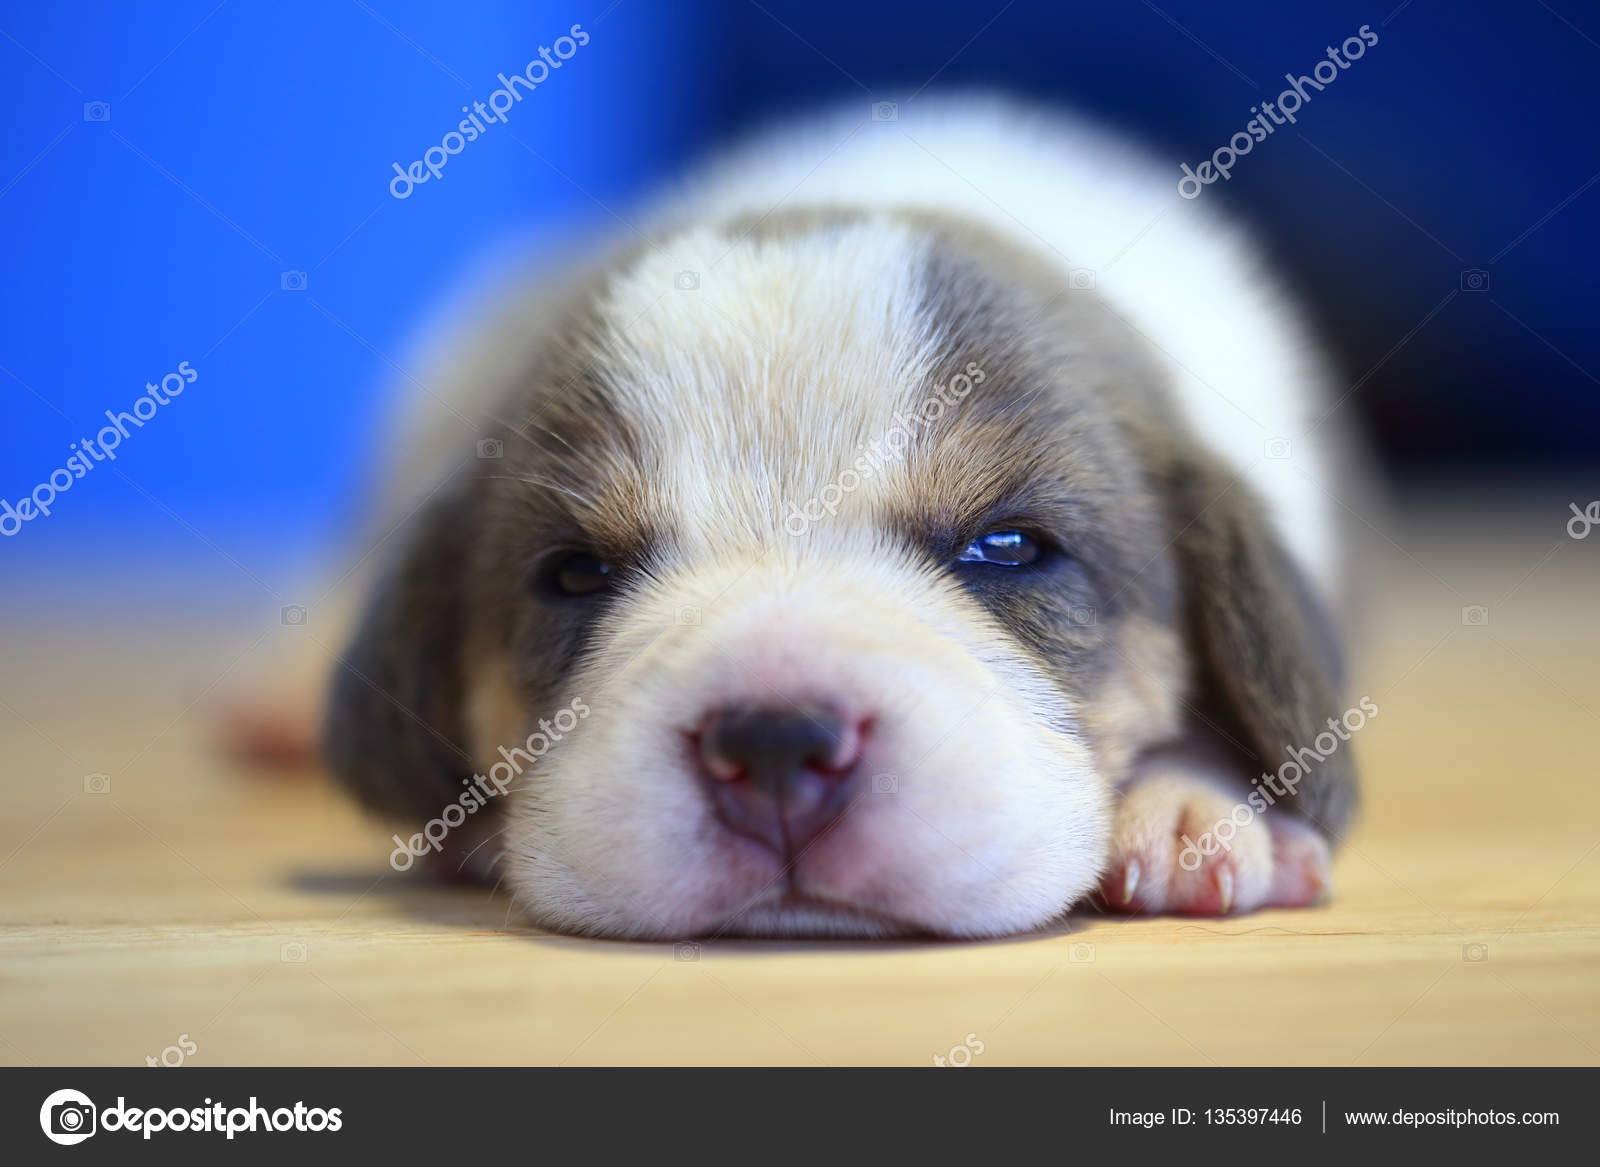 1 Month Year Old Beagle Puppy Silver Tri Color Is Sleeping Stock Photo C S Thanawathreborn Gmail Com 135397446